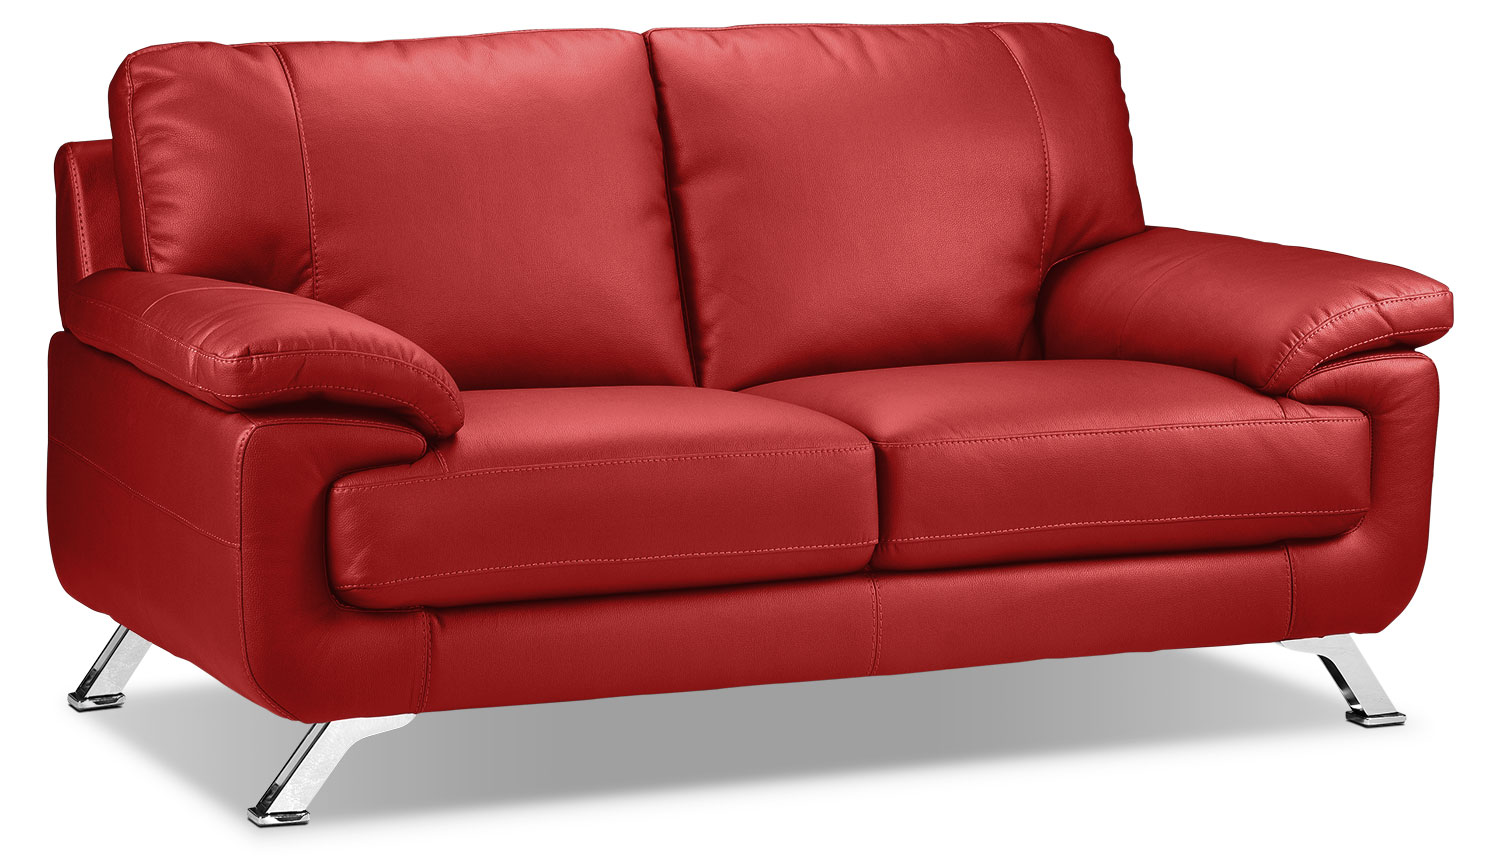 Living Room Furniture - Infinity Loveseat - Red